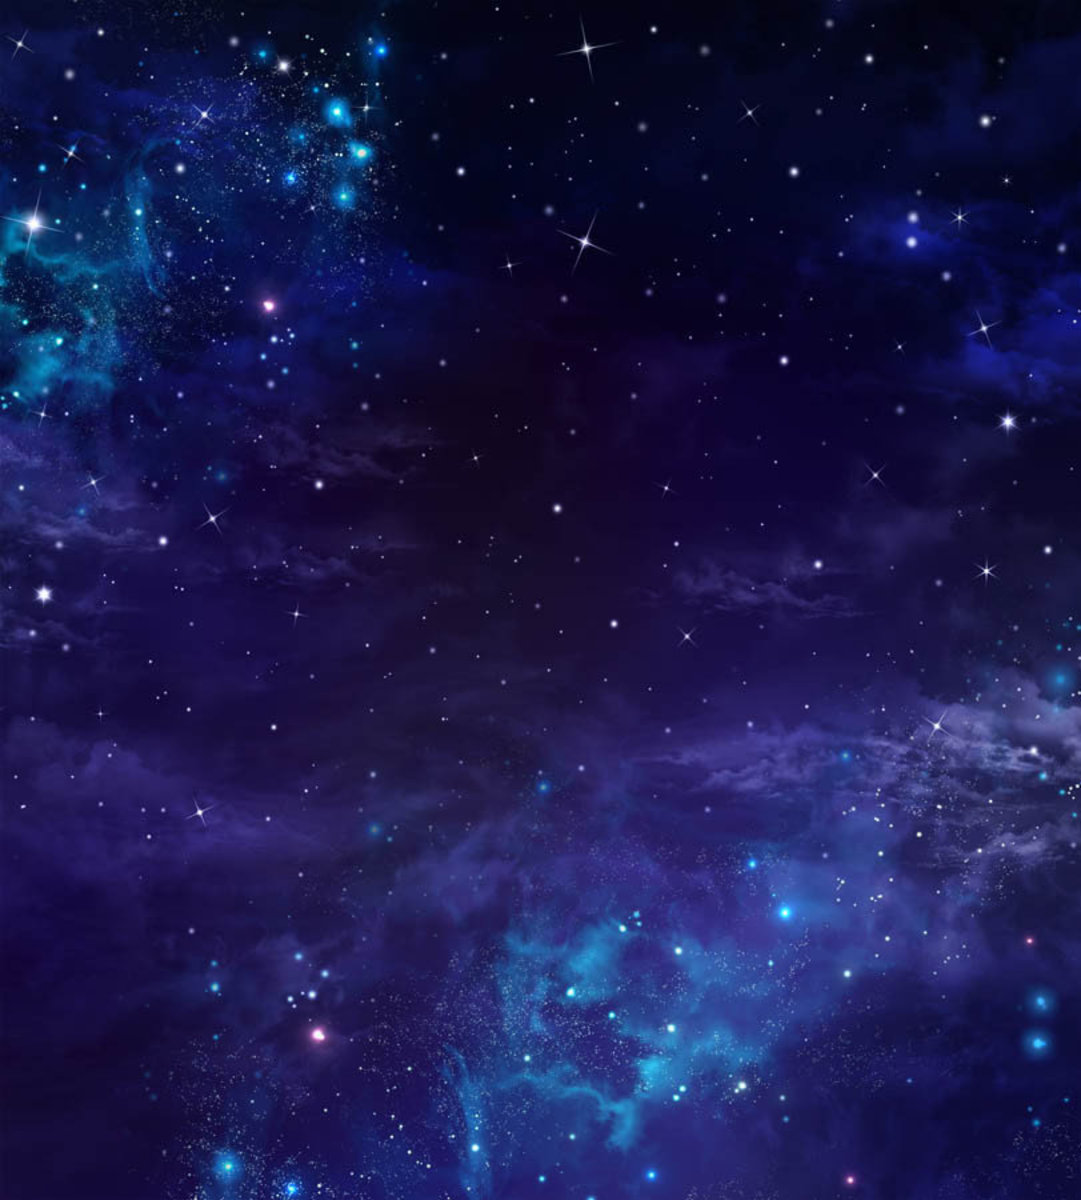 Glowing Galaxies in Outer Space Wall Mural